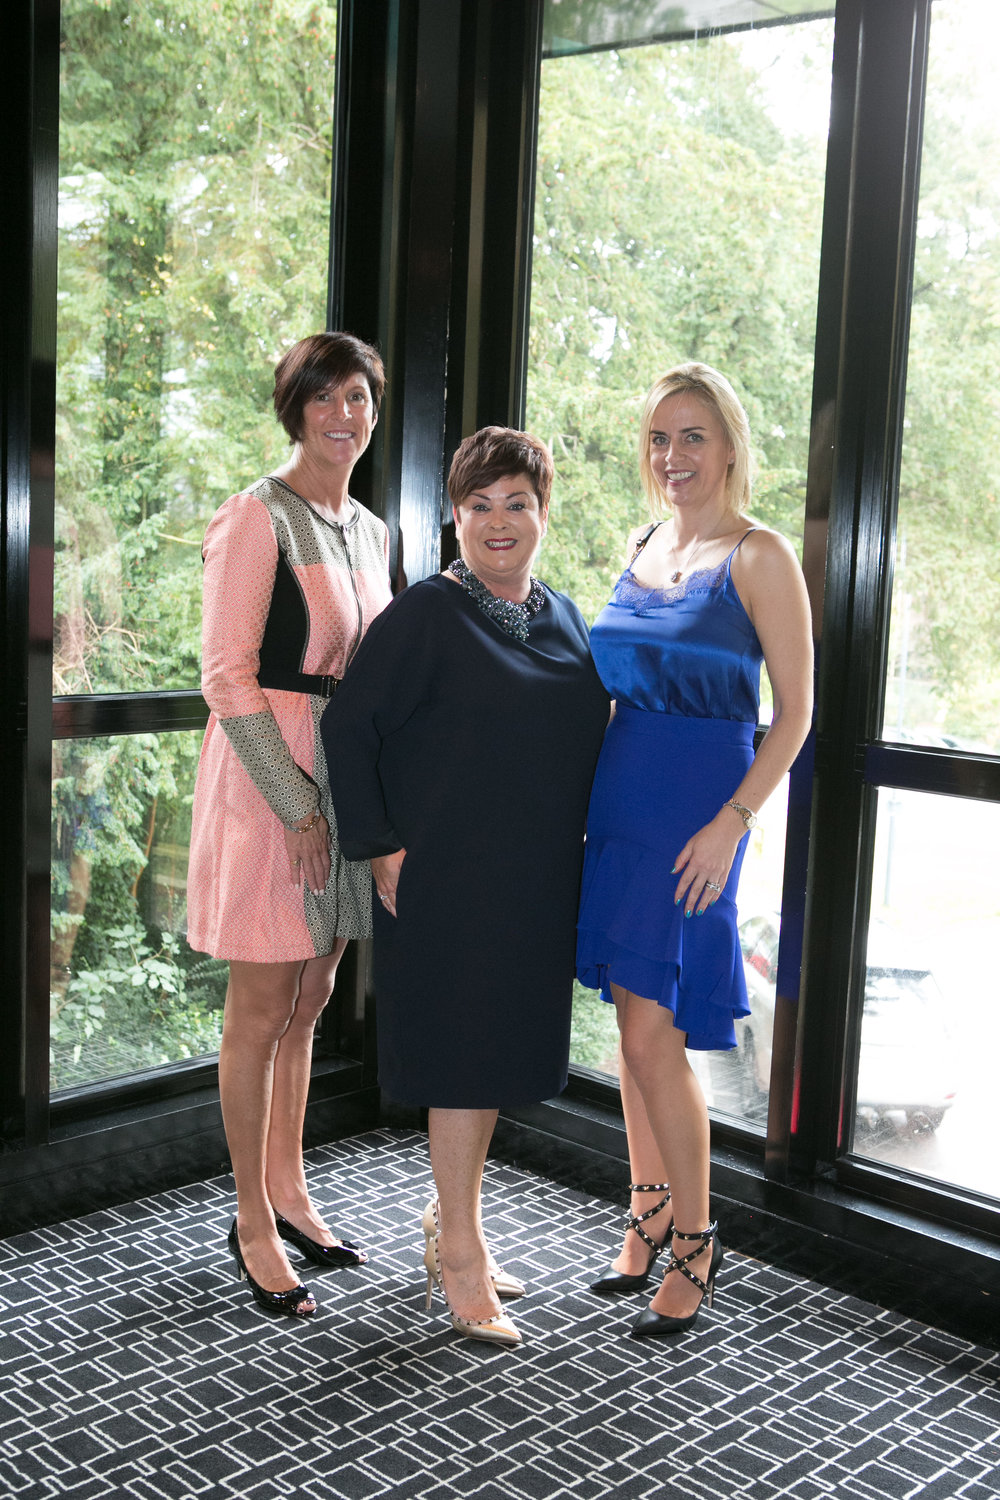 Gillian O'Sullivan, Passage West, Niamh Horgan, Frankfield and Clare Clehane, Rochestown at the Annual Aer Lingus Autumn Lunch in aid of Cork ARC Cancer Support House.